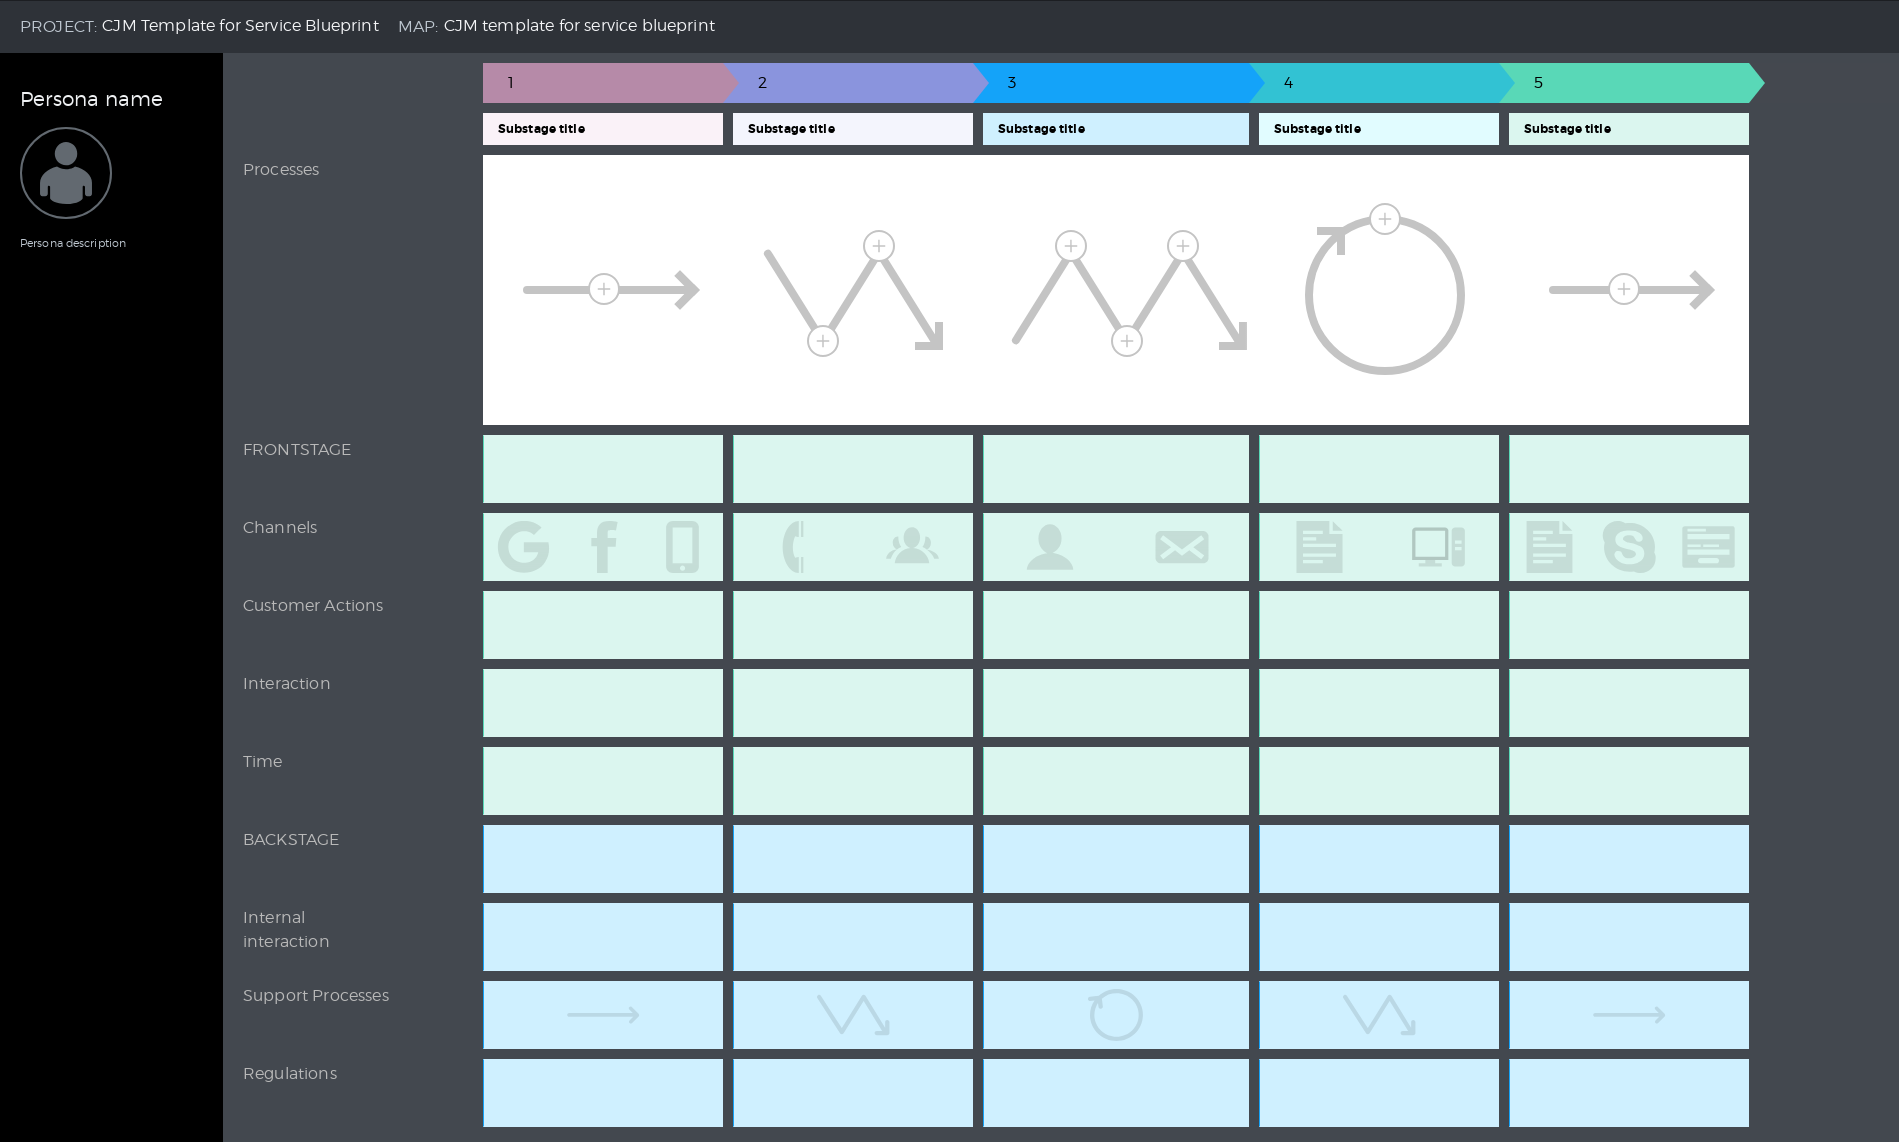 Customer Journey Map Template For Service Blueprint Uxpressia